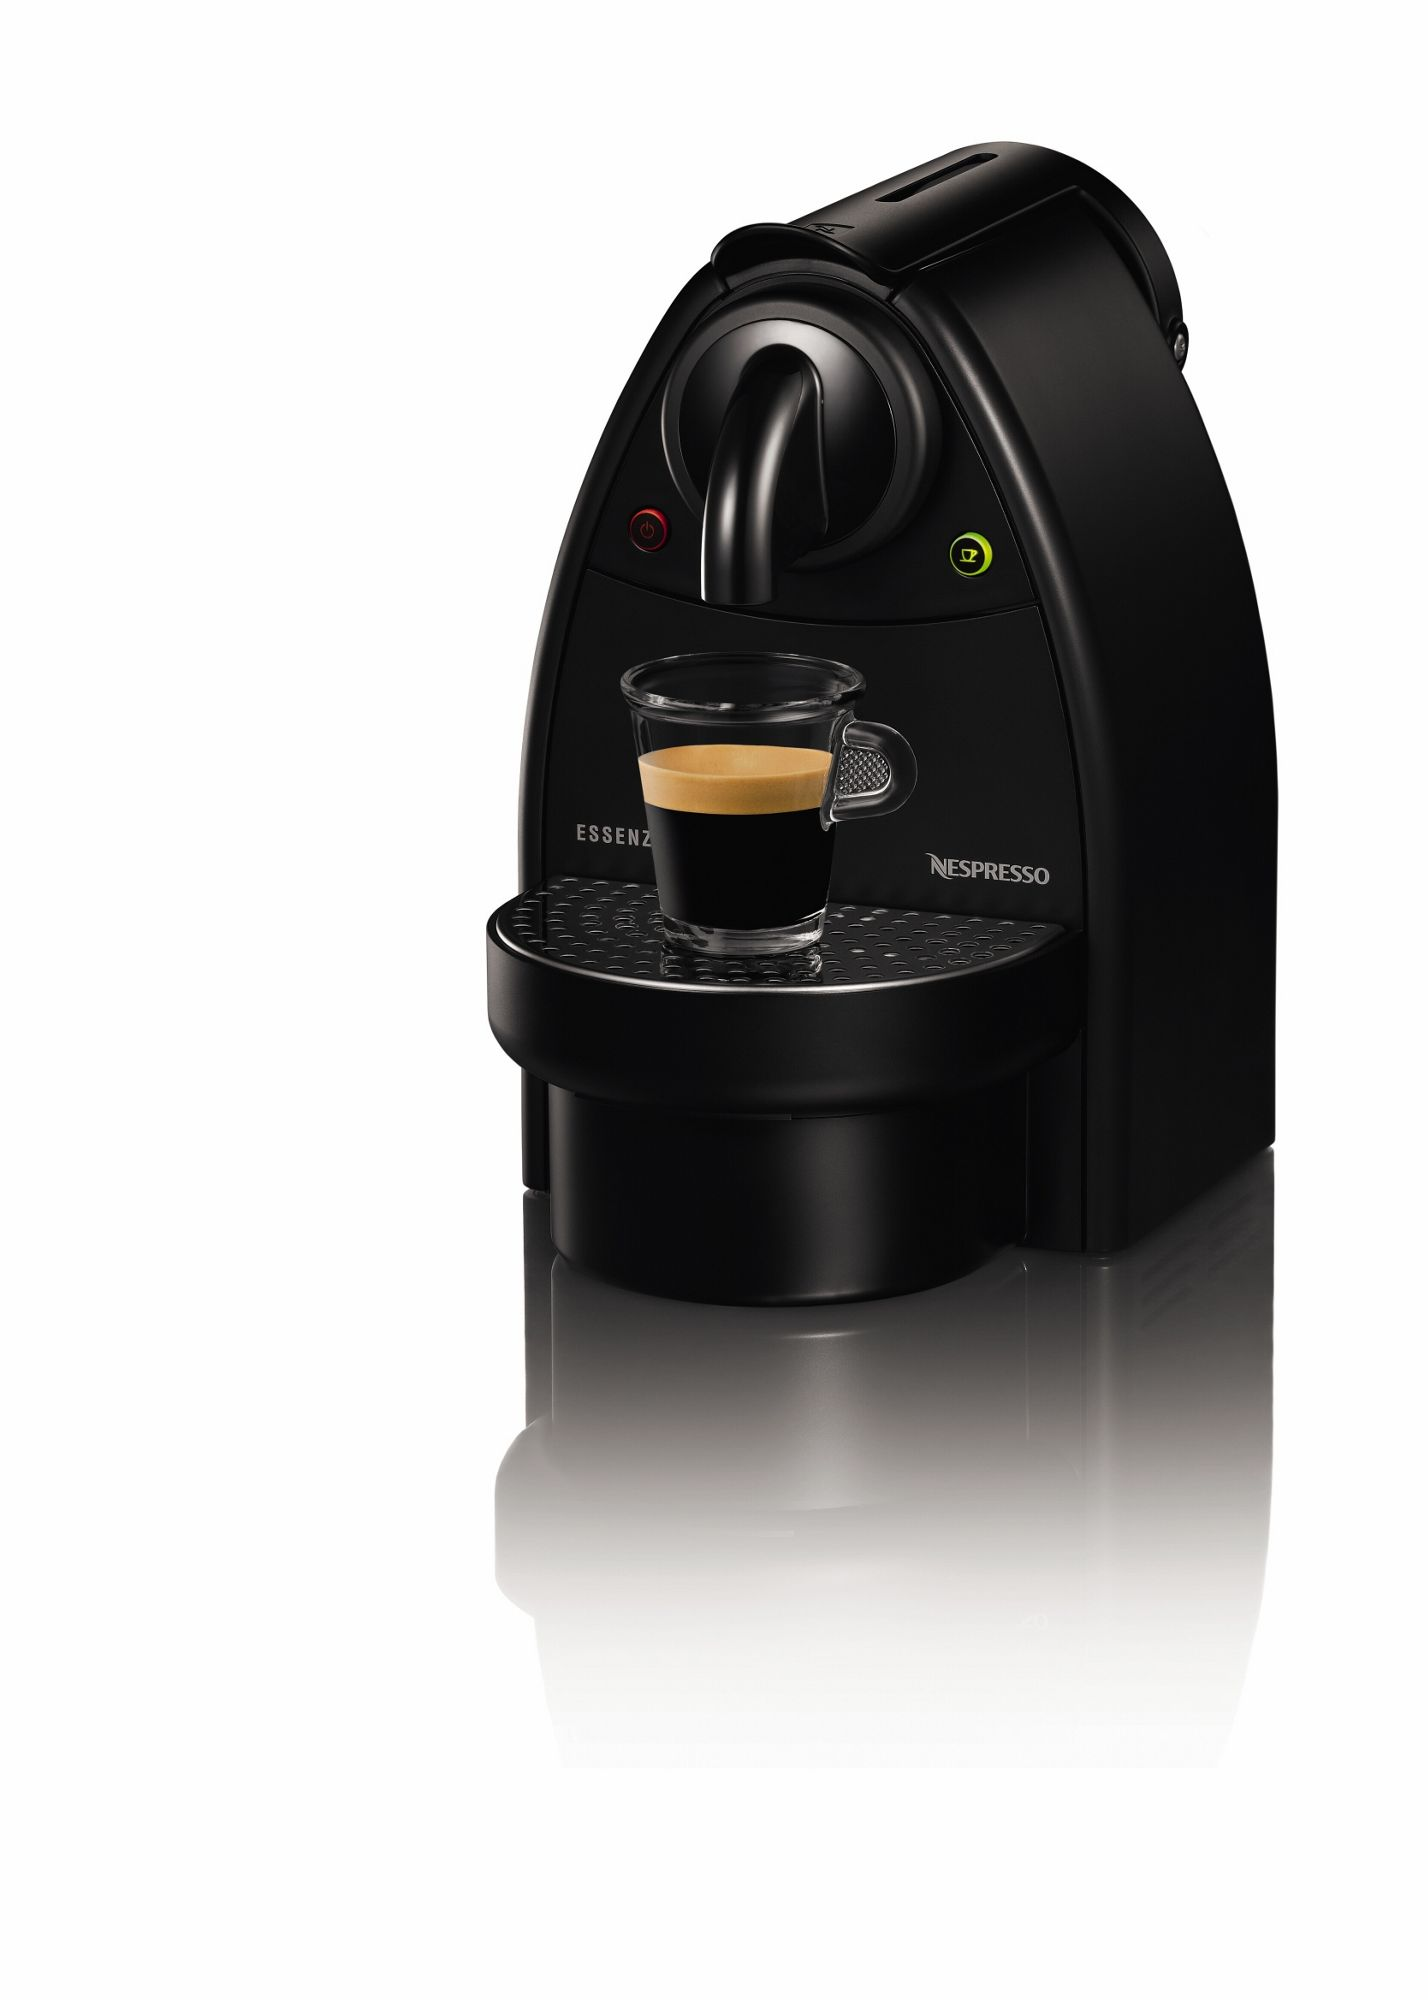 nescafe nespresso essenza by krups xn200340 coffee machine. Black Bedroom Furniture Sets. Home Design Ideas